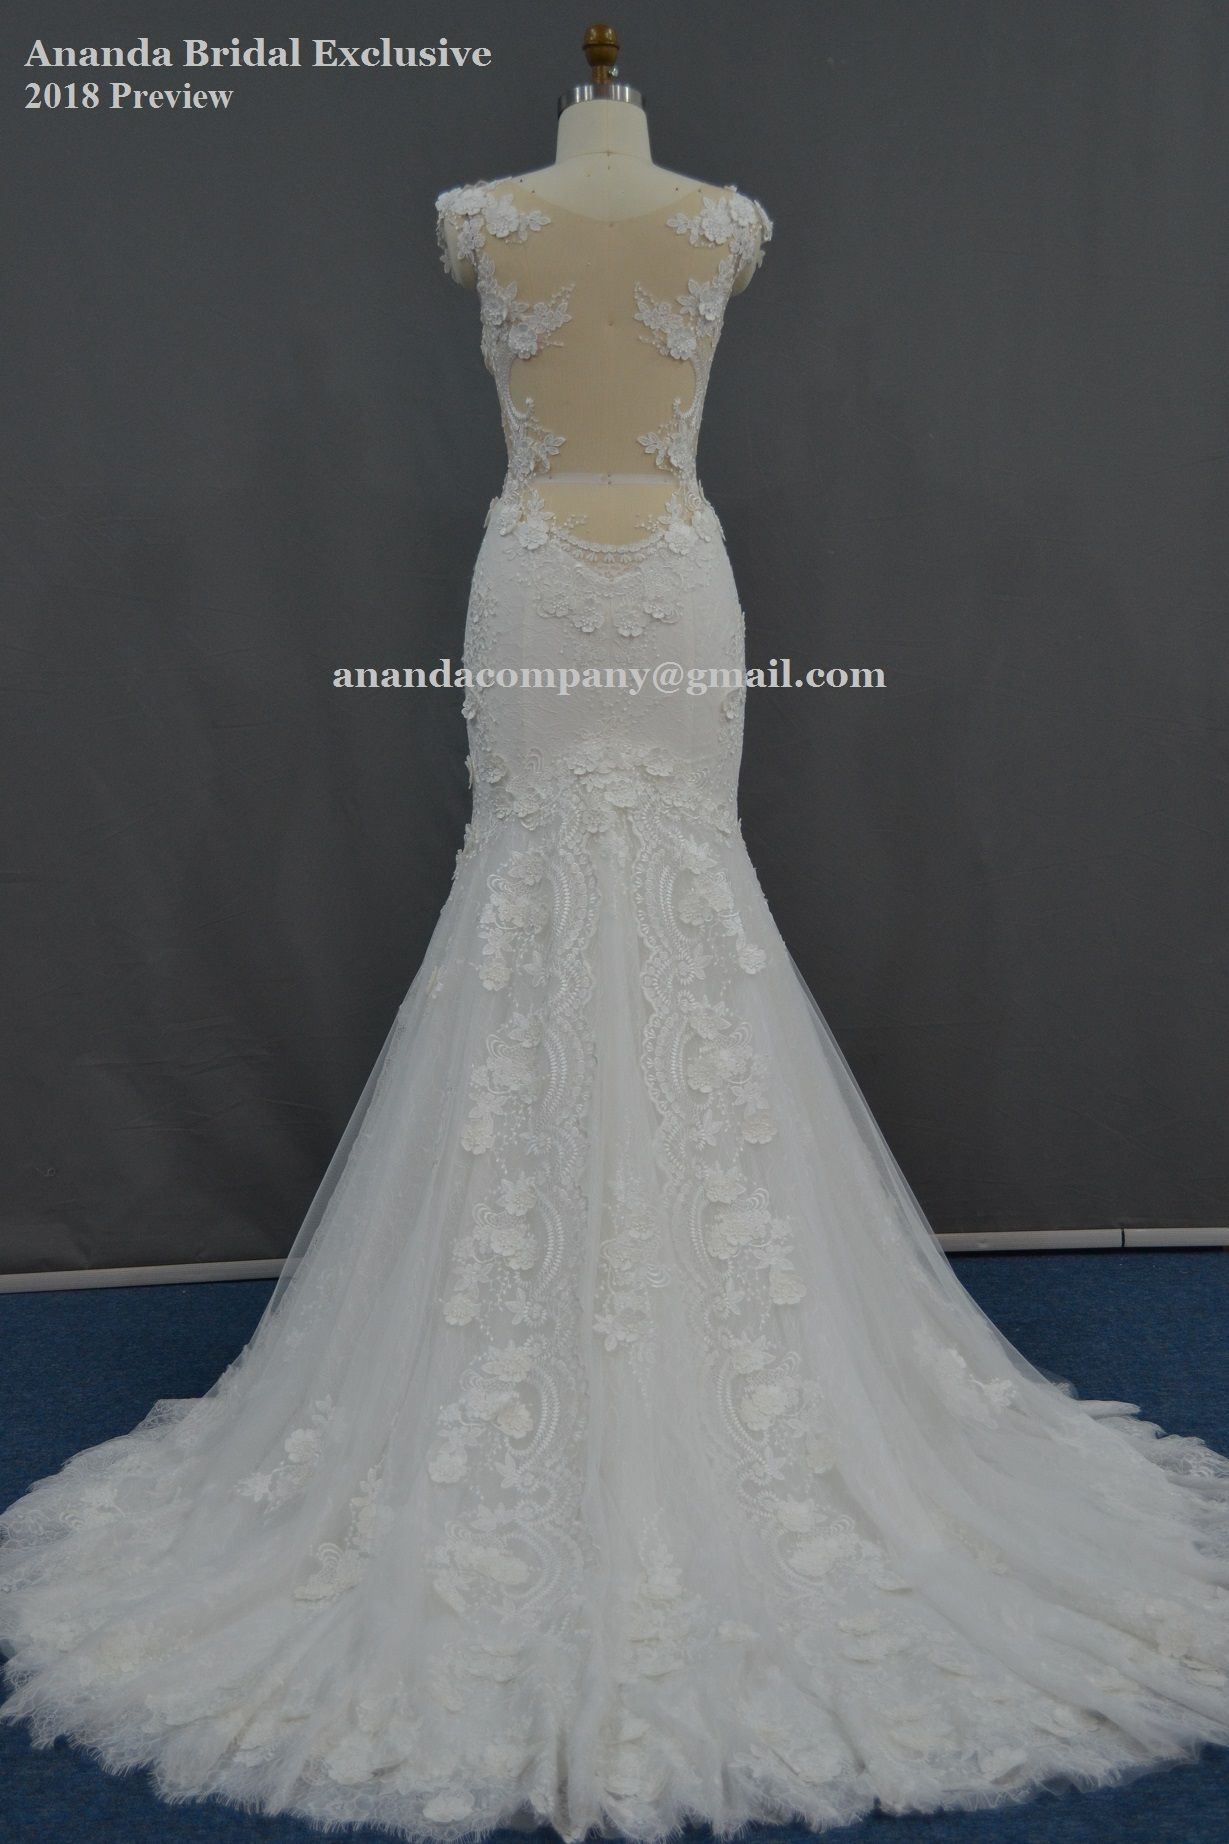 Low back lace mermaid wedding dress  Sexy mermaid lace wedding dress with nude skin low back  Preview